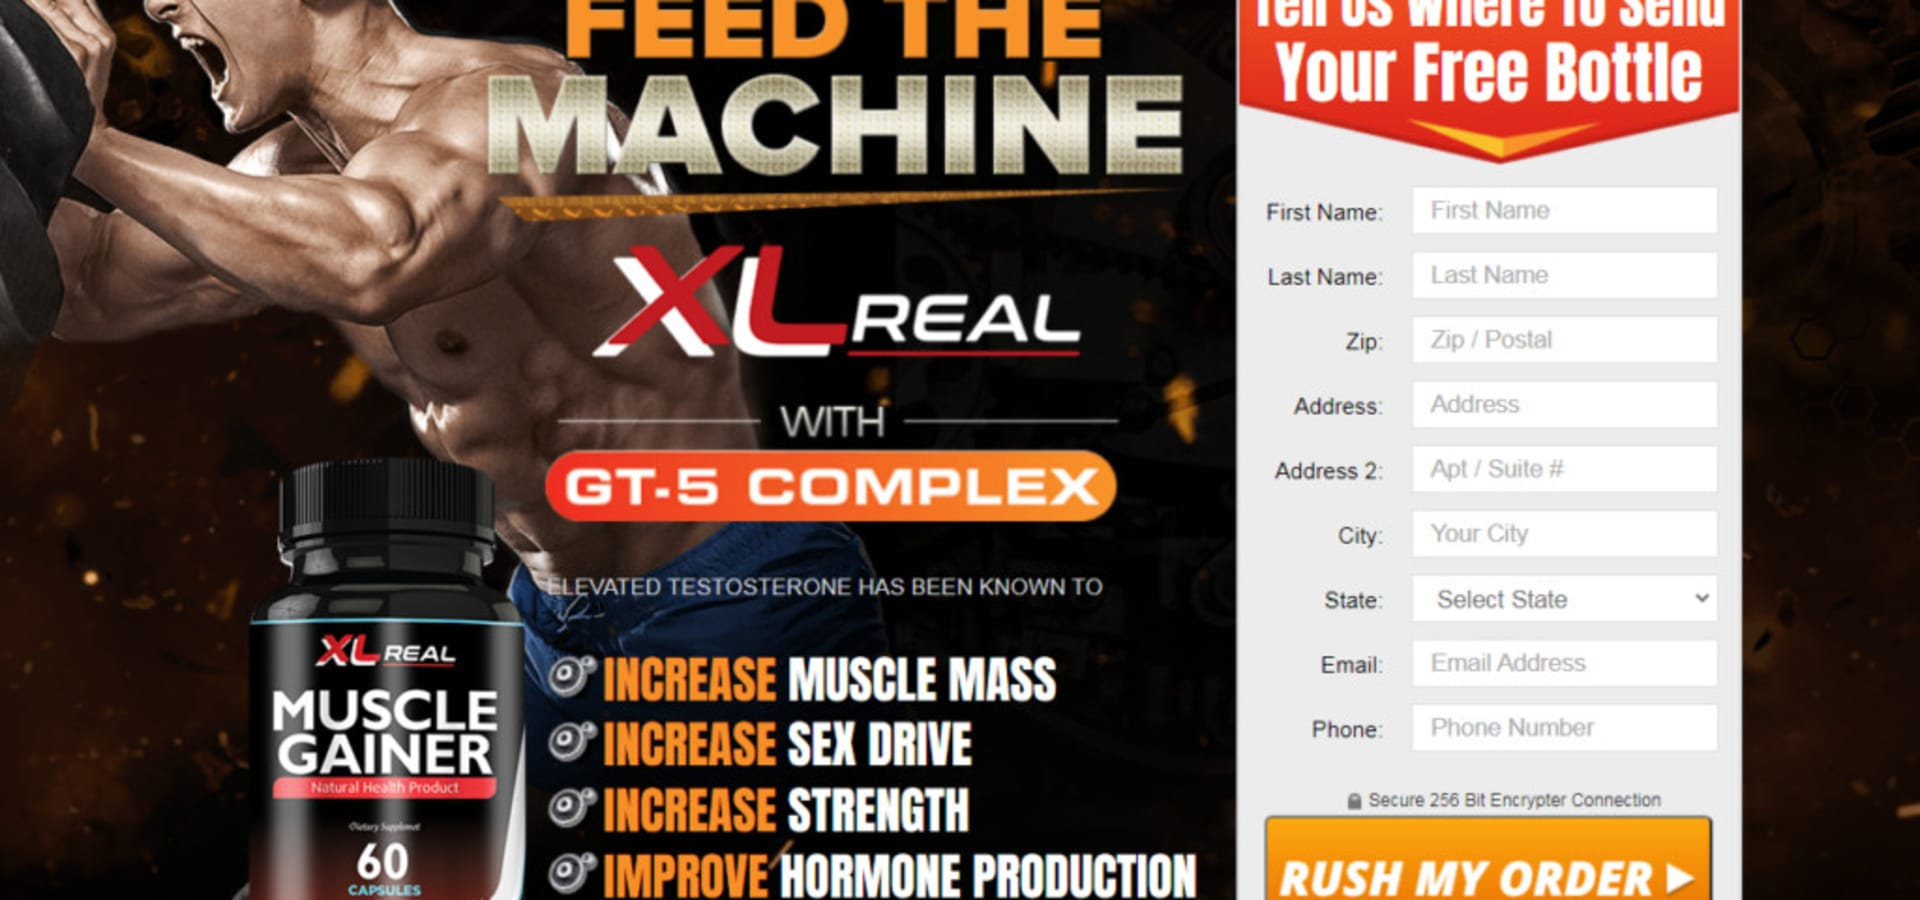 XL Real Muscle Gainer Reviews